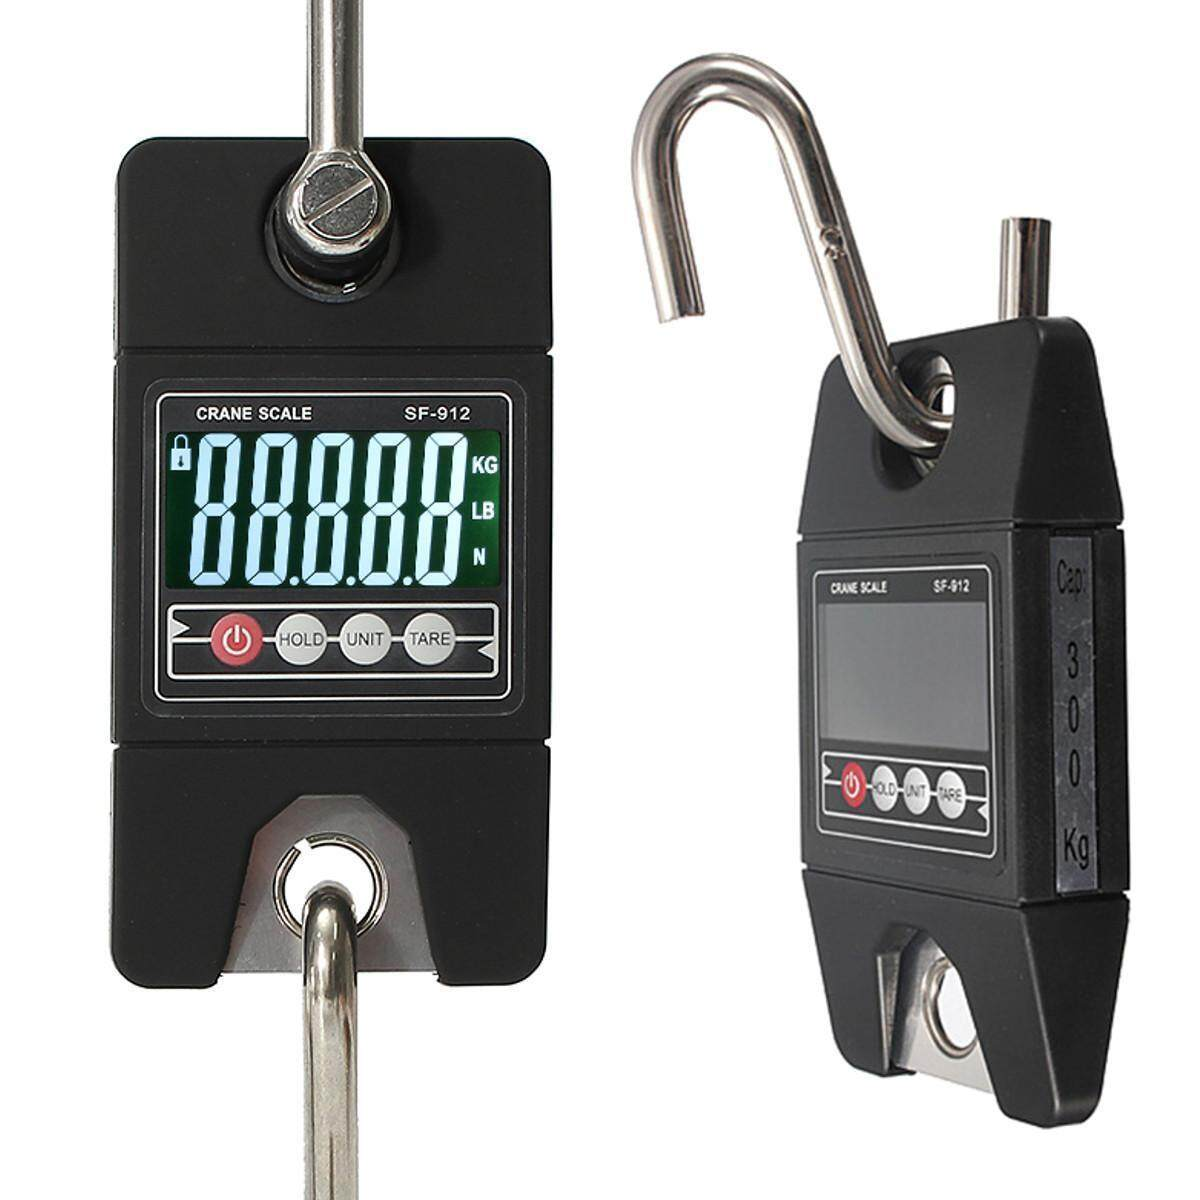 bcf1a7c5fc2b New 300 KG/600 LBS Digital Hanging Crane Scale Tool SF-912 Industrial Heavy  Duty